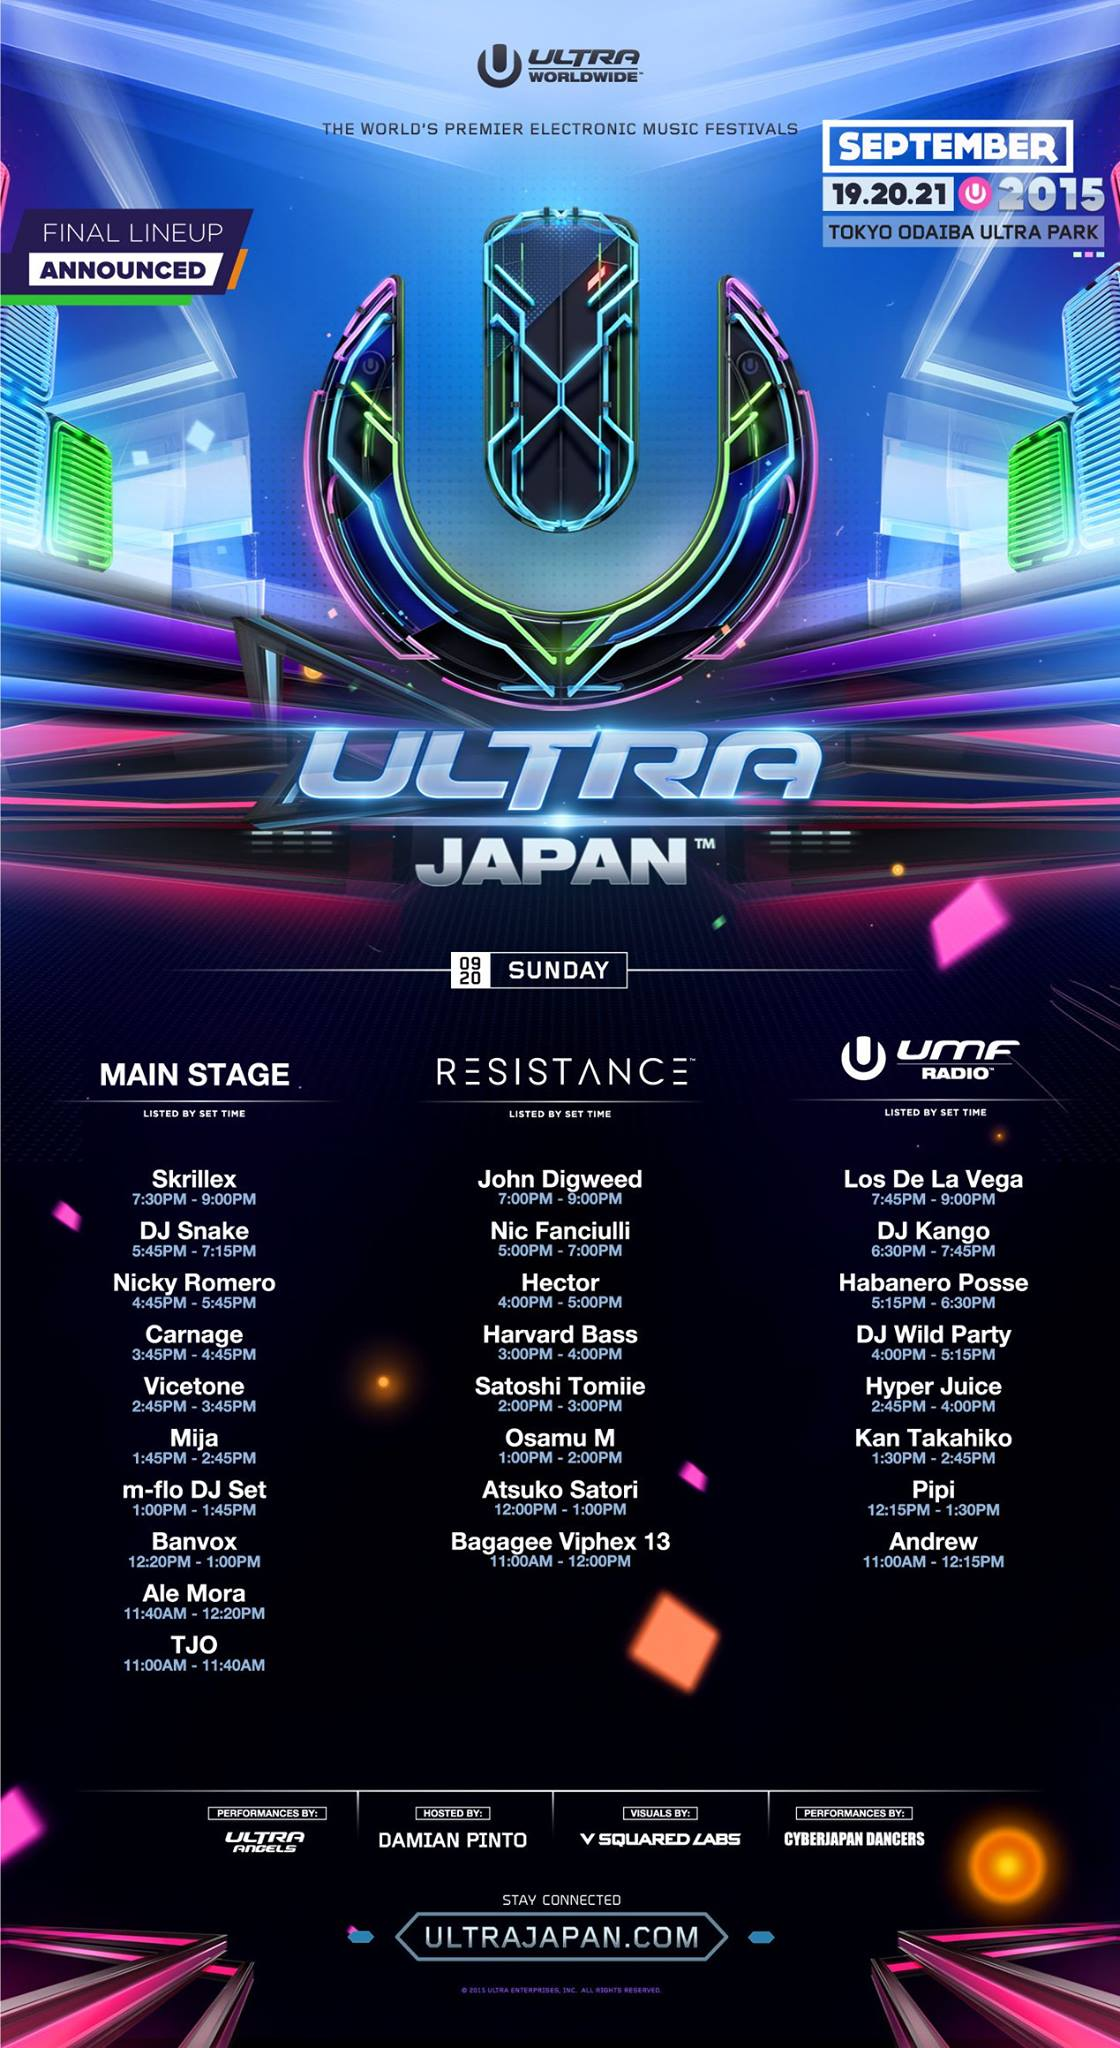 ULTRA JAPAN 2015 DAY 2